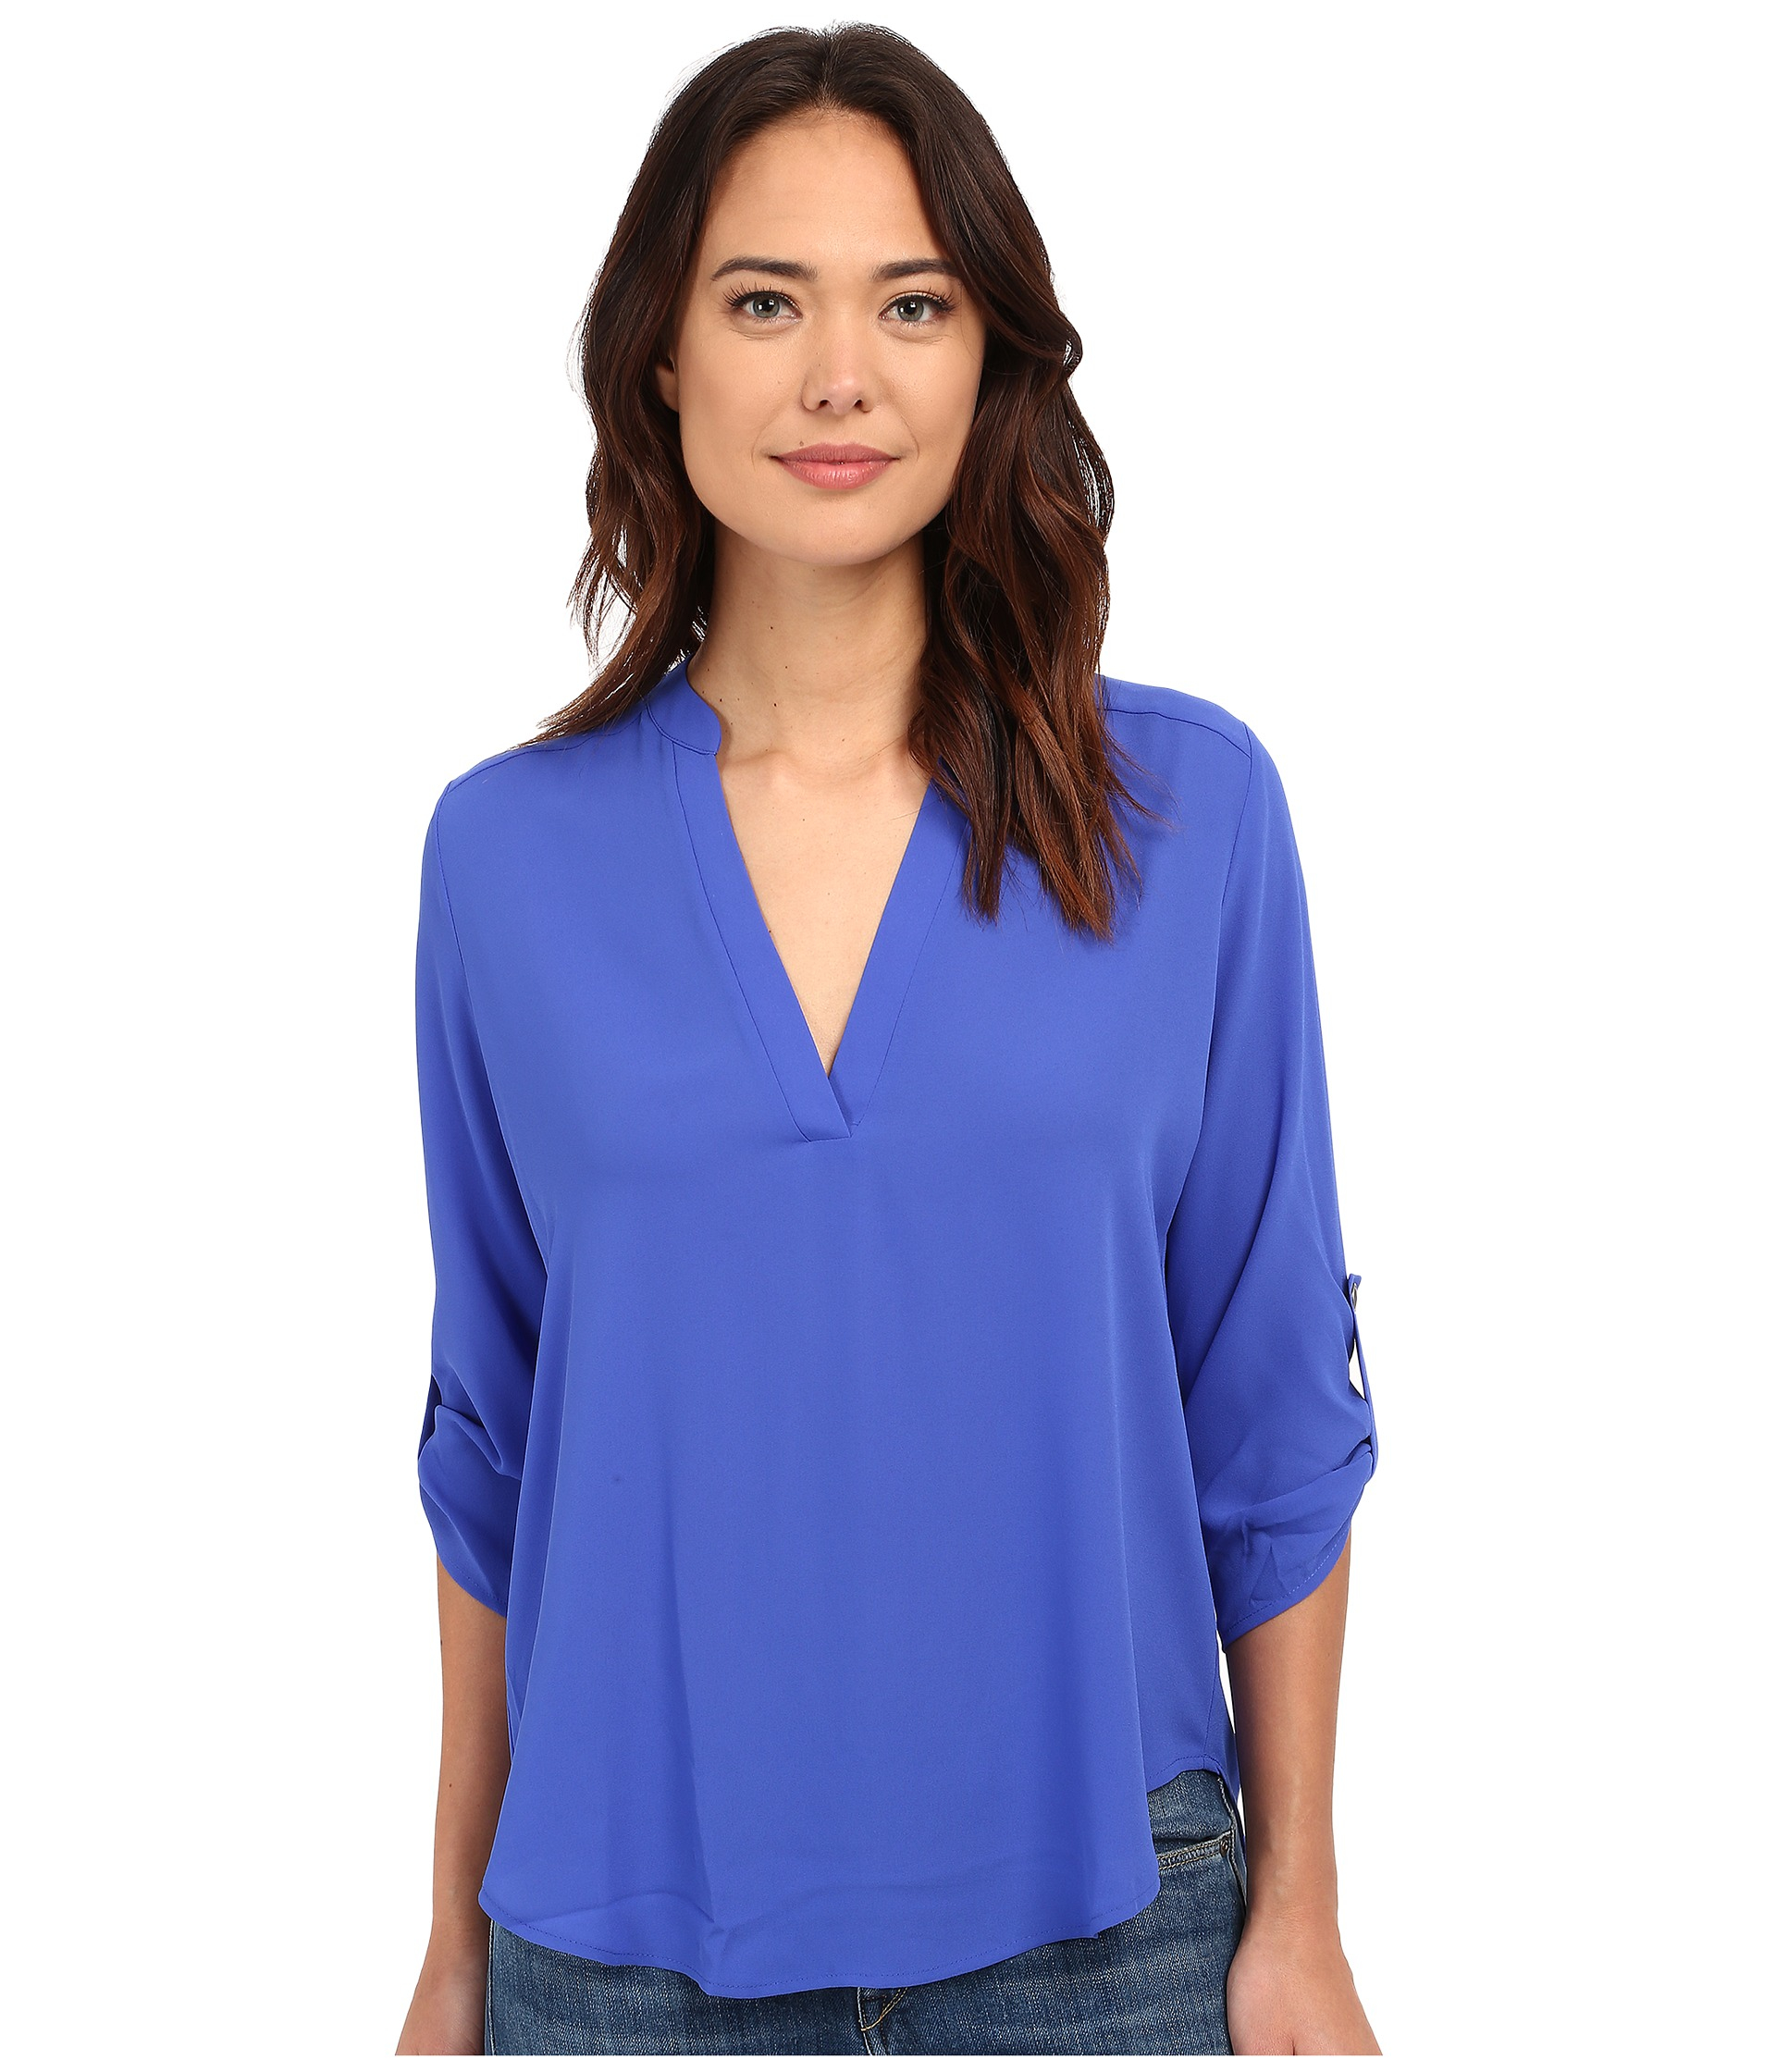 Brigitte bailey Channing V-neck Blouse in Blue | Lyst